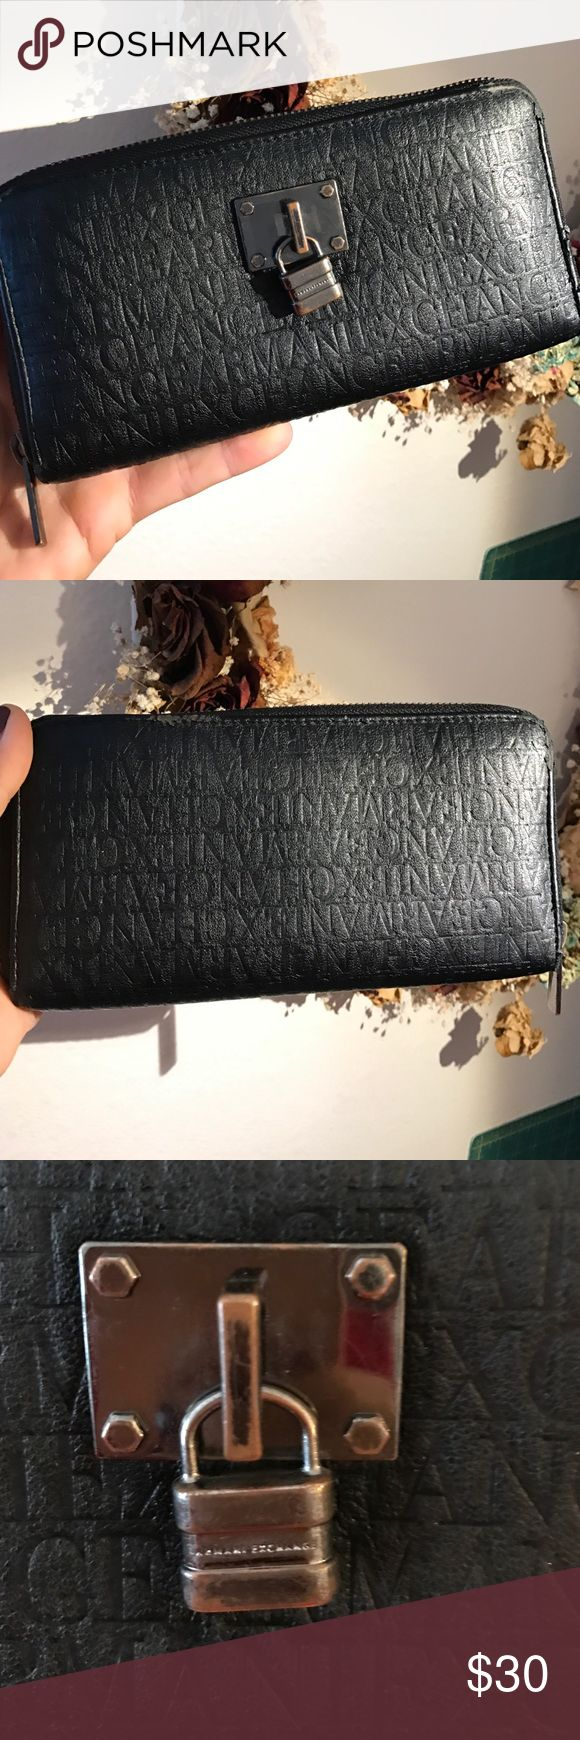 "Armani Exchange Clutch/Wallet Black previously adored Genuine Armani Wallet/Clutch dimensions: 4"" x 8"". Make an Offer! No reasonable offer will be refused!😘😘😘😘 A/X Armani Exchange Bags Clutches & Wristlets"